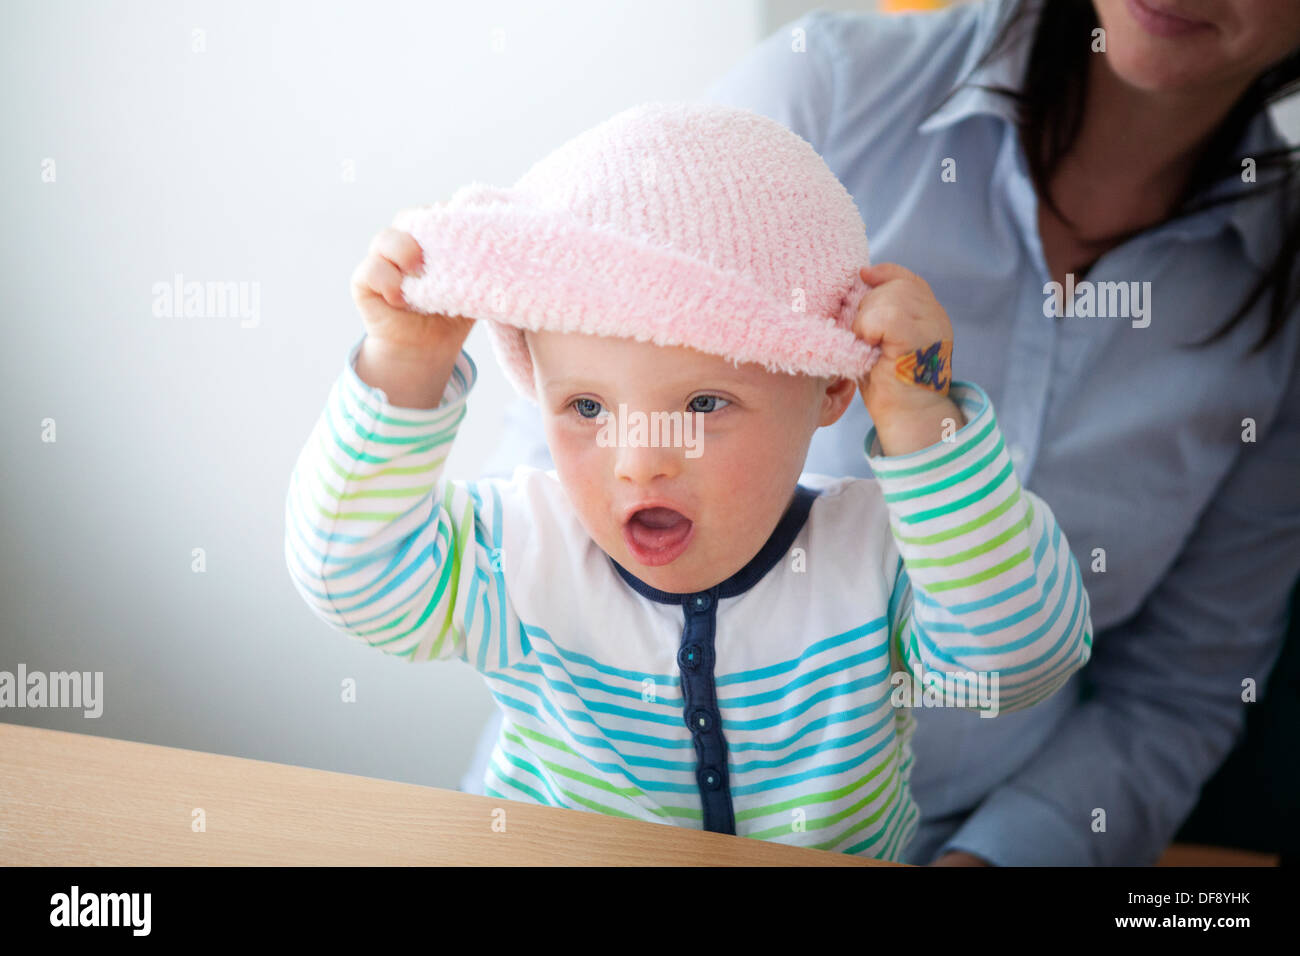 CHILD, DOWN'S SYNDROME - Stock Image